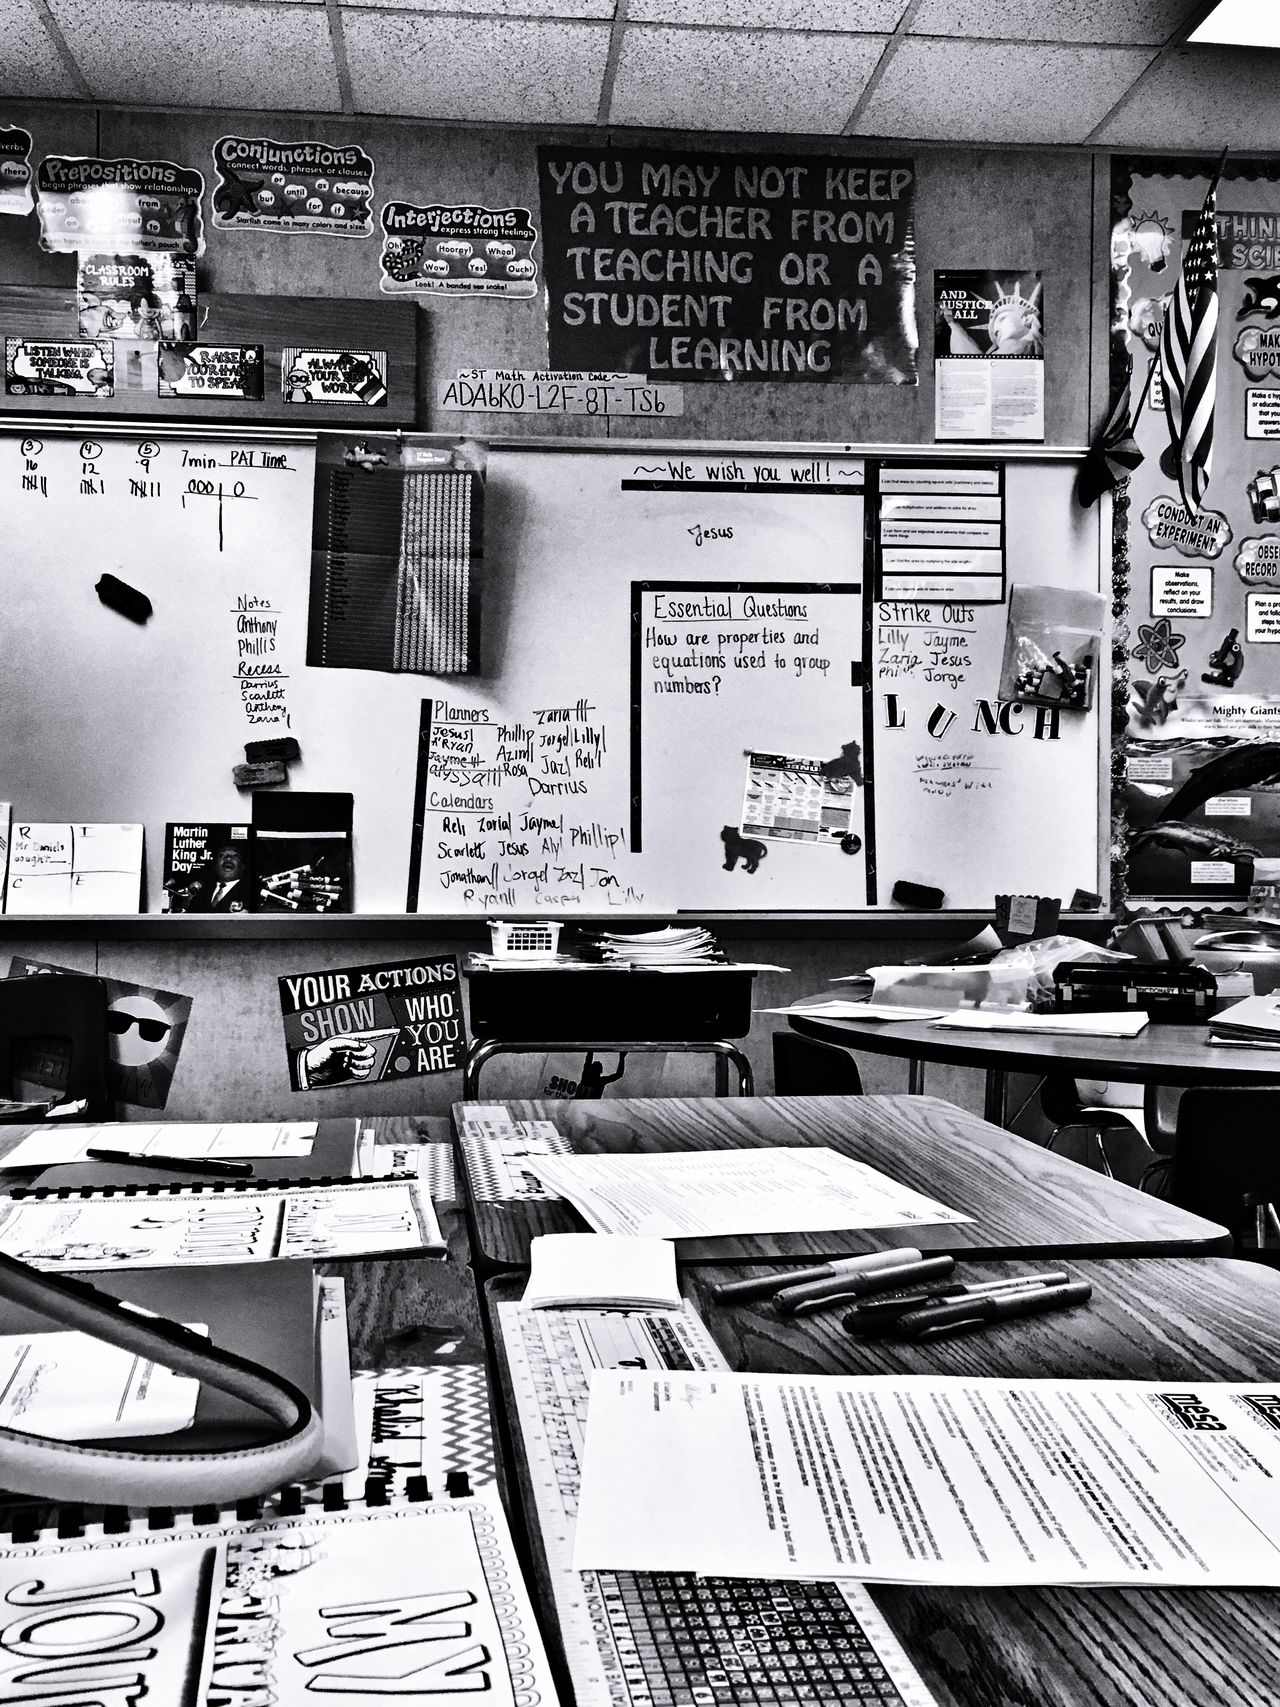 Classroom Indoors  No People Technology Built Structure Printing Press Day Classroom EyeEm Gallery Check This Out Popular Photos EyeEm Best Shots Mesa Arizona Signboard Board Information Sign Communication Black And White Photography